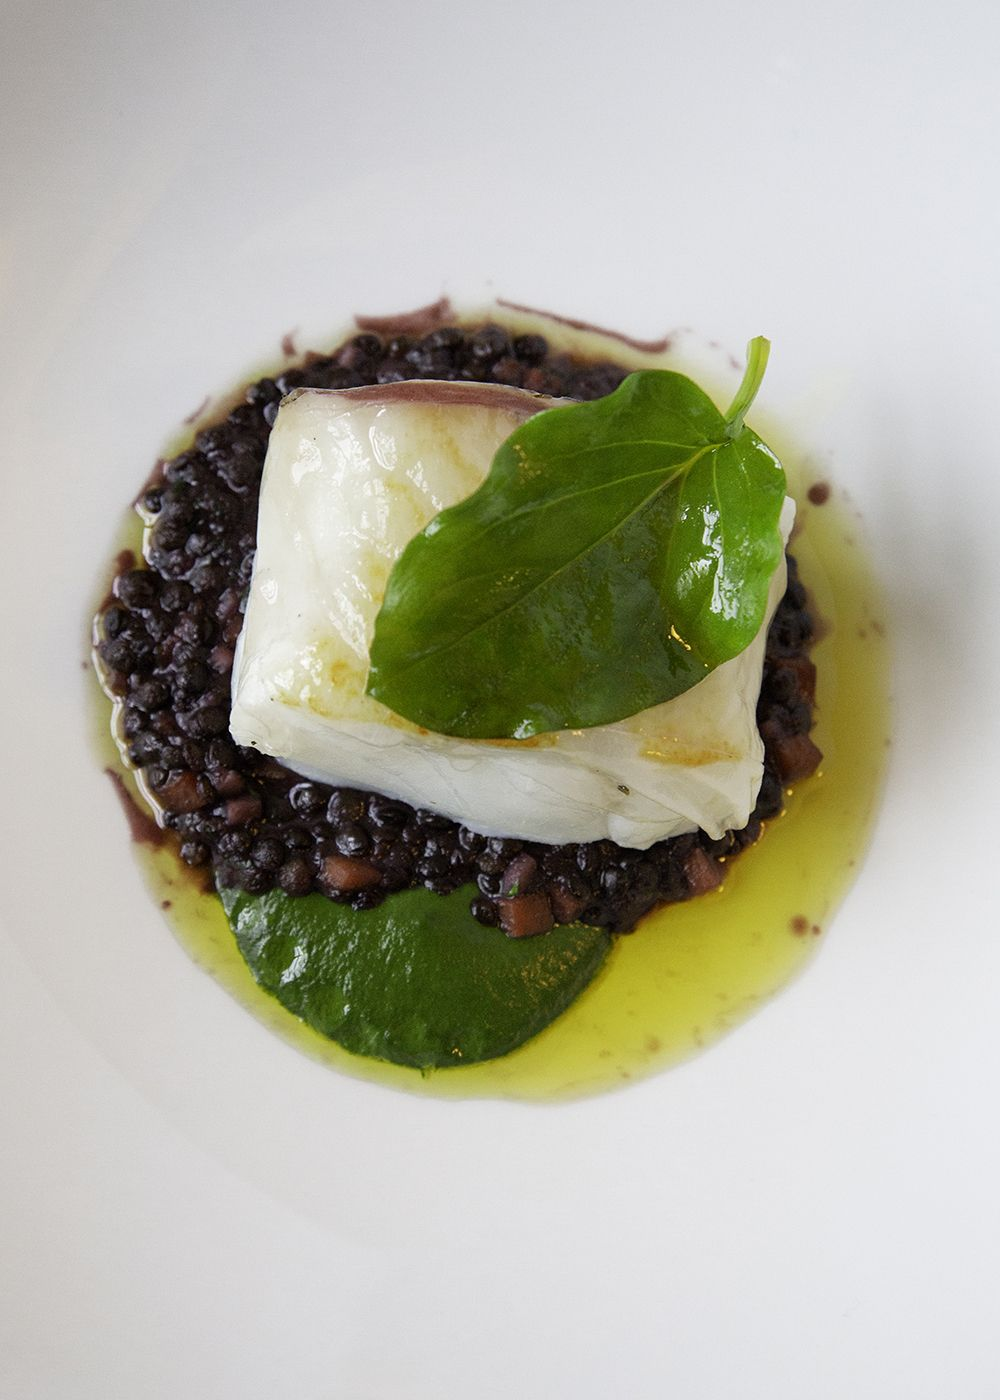 Volpe_nera_cod_with_lentils_edit